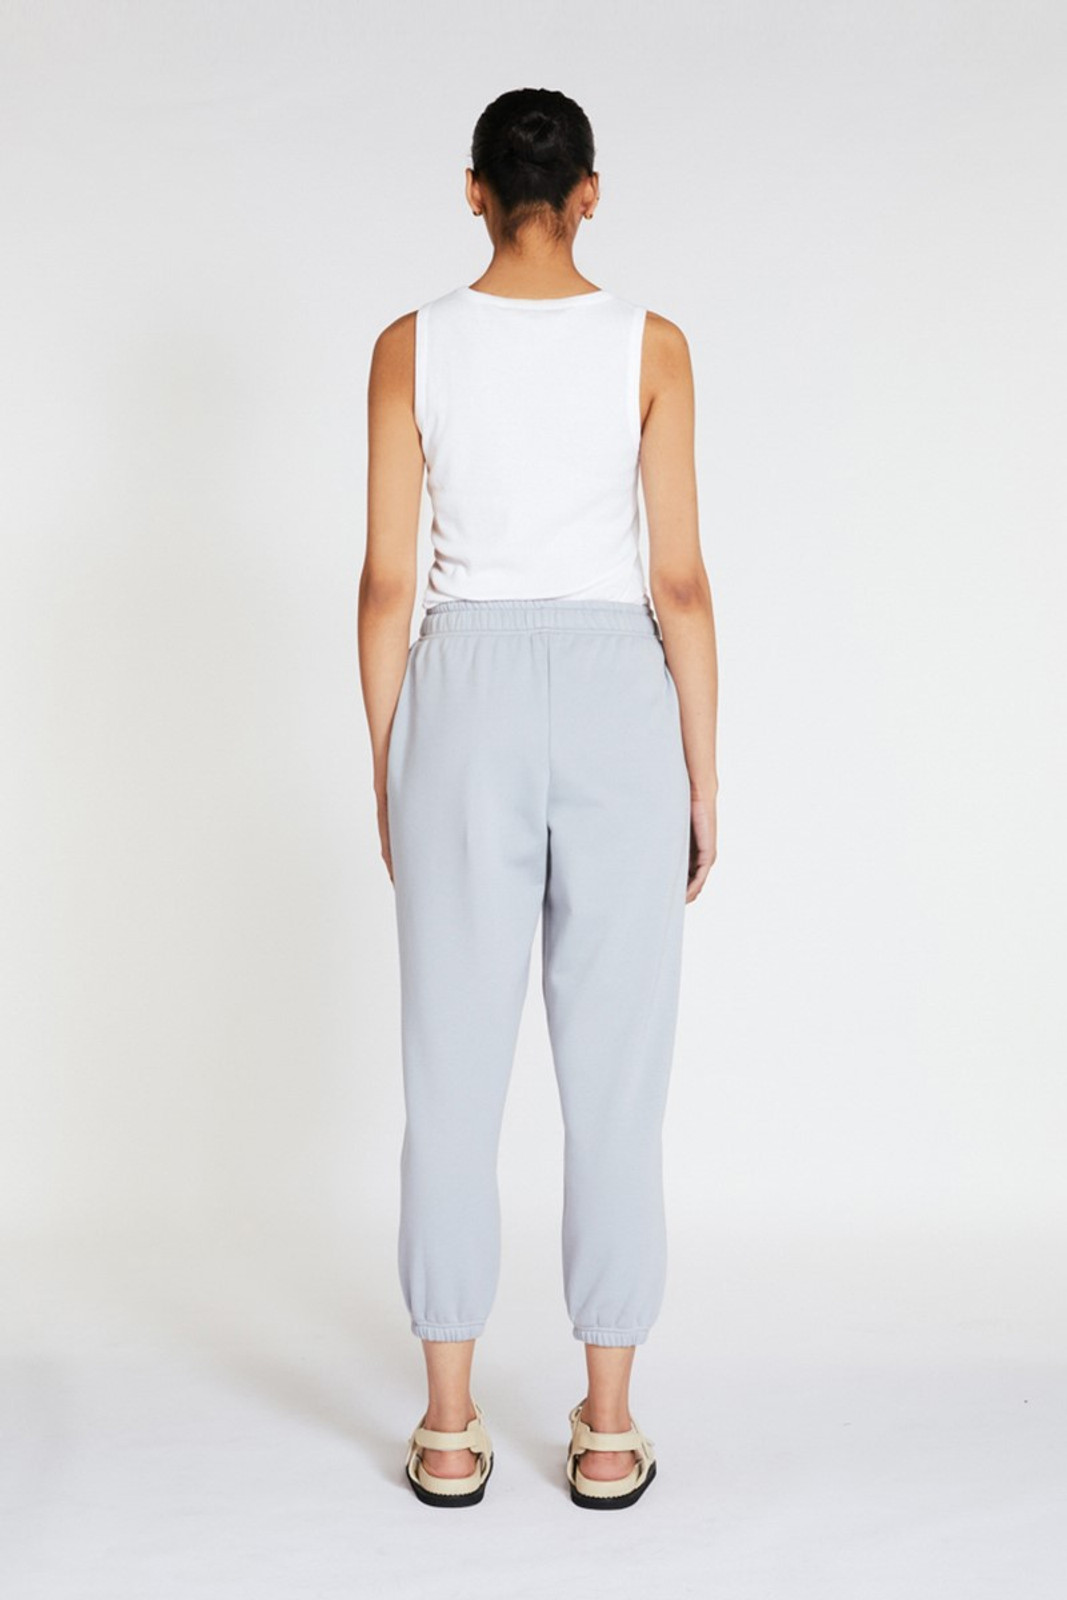 Elka Collective Trademark Trackpant Blue  3